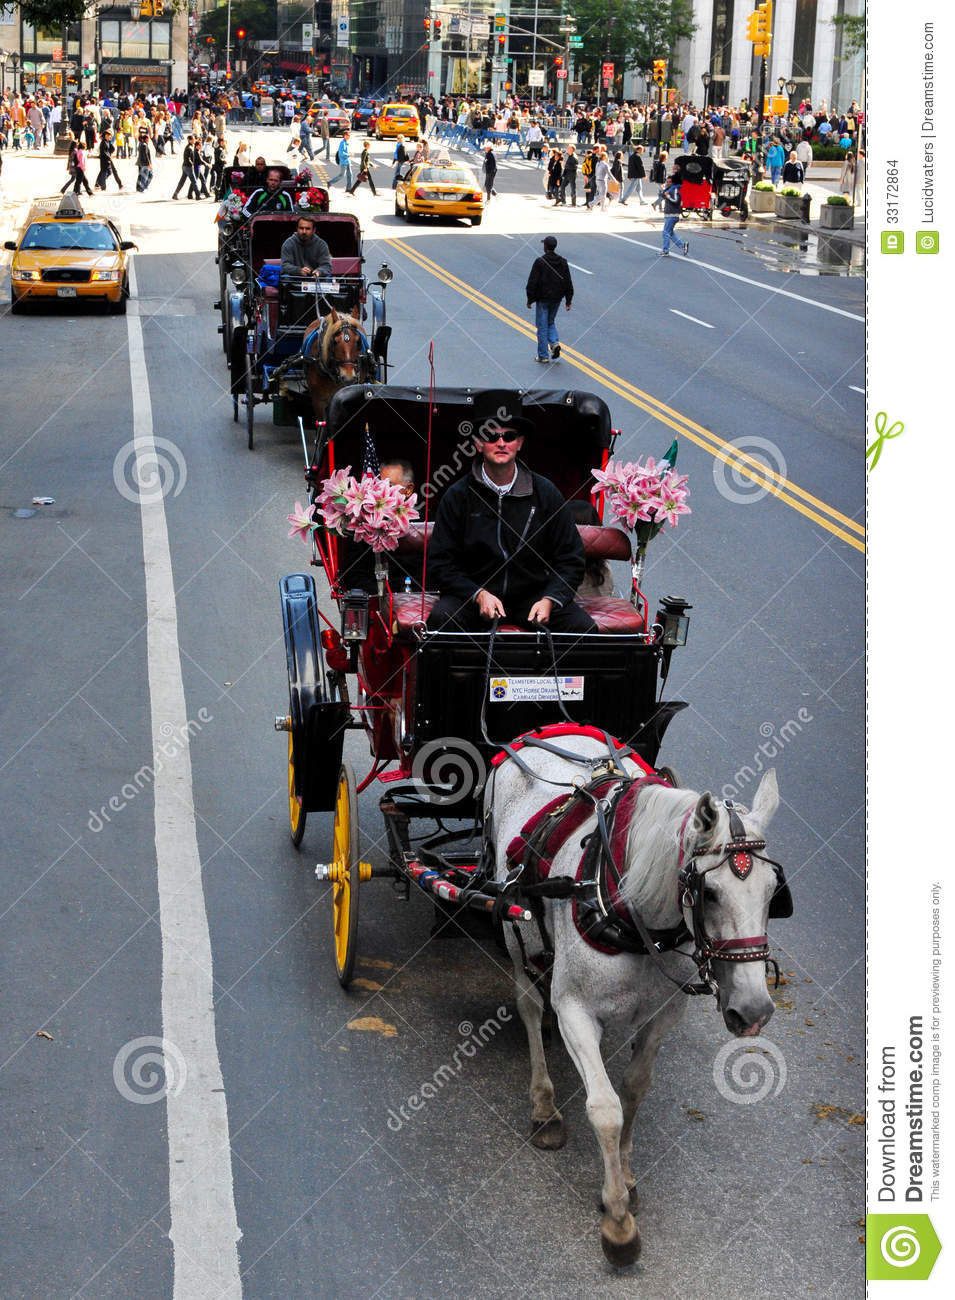 horse and carriage rides in central park editorial stock image image 33172864. Black Bedroom Furniture Sets. Home Design Ideas